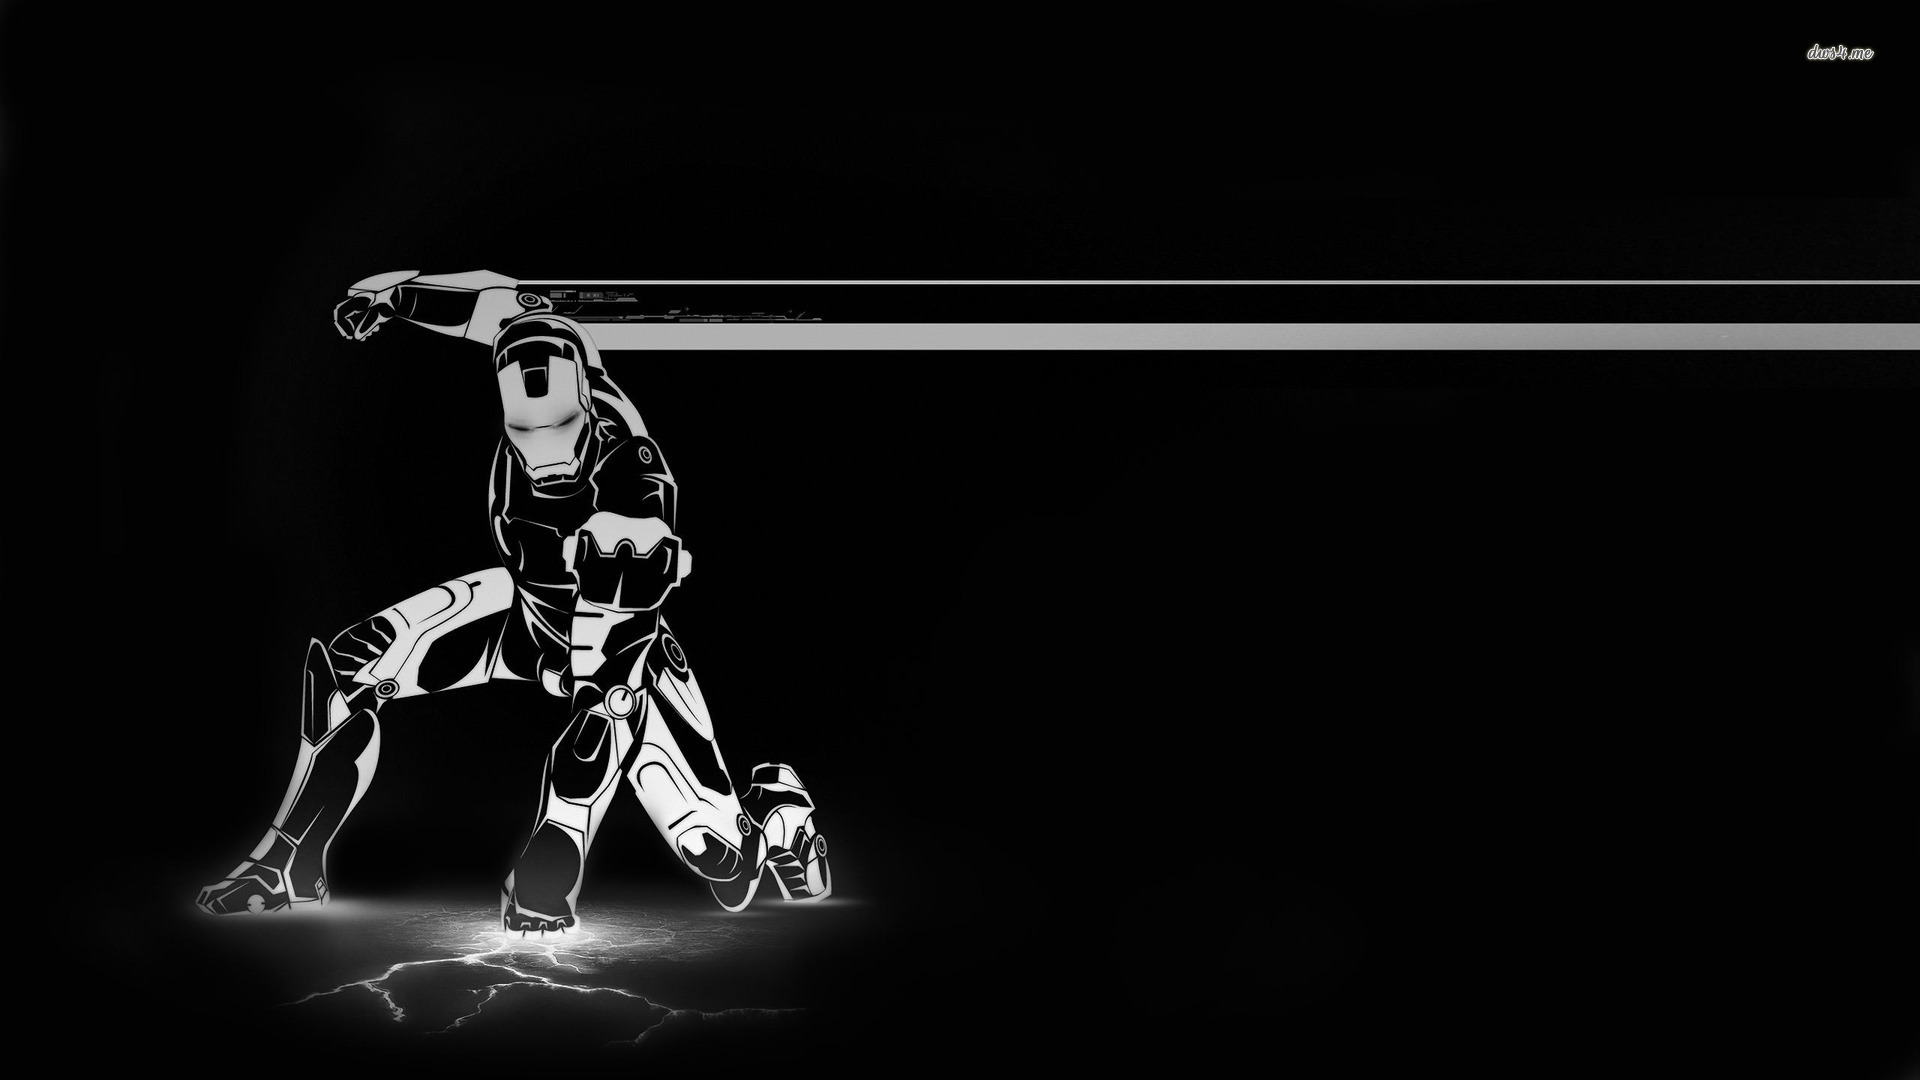 pictures of iron man 35 iron man hd wallpapers for desktop cartoon district of man iron pictures